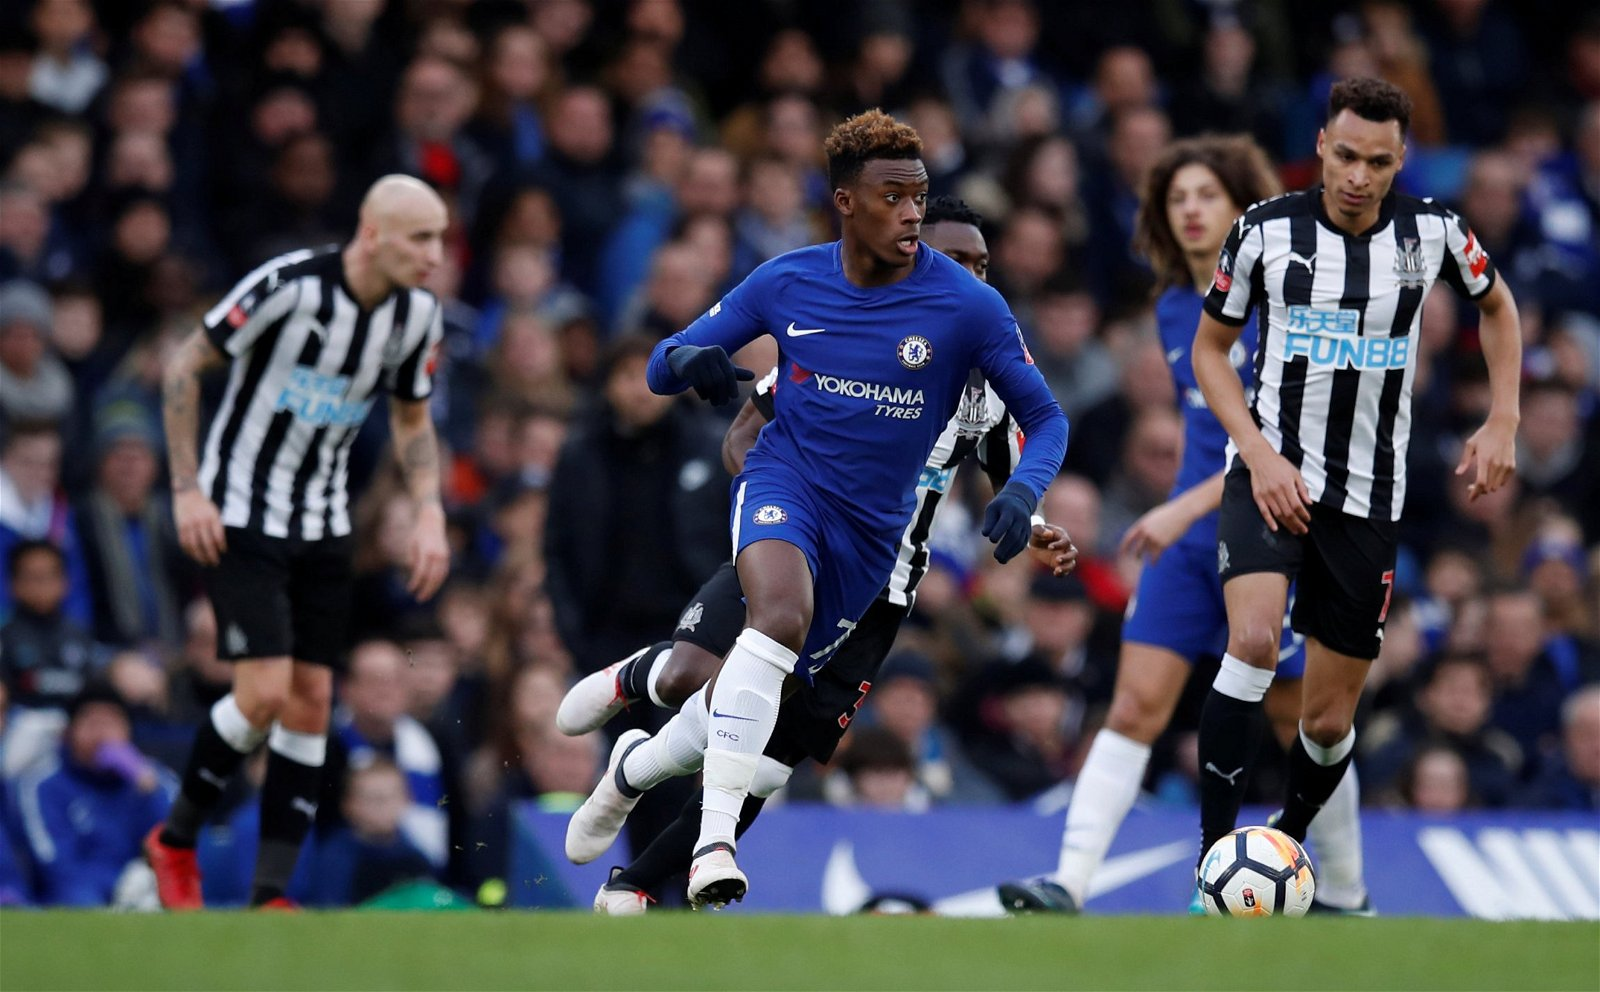 Callum Hudson-Odoi's debut for Chelsea